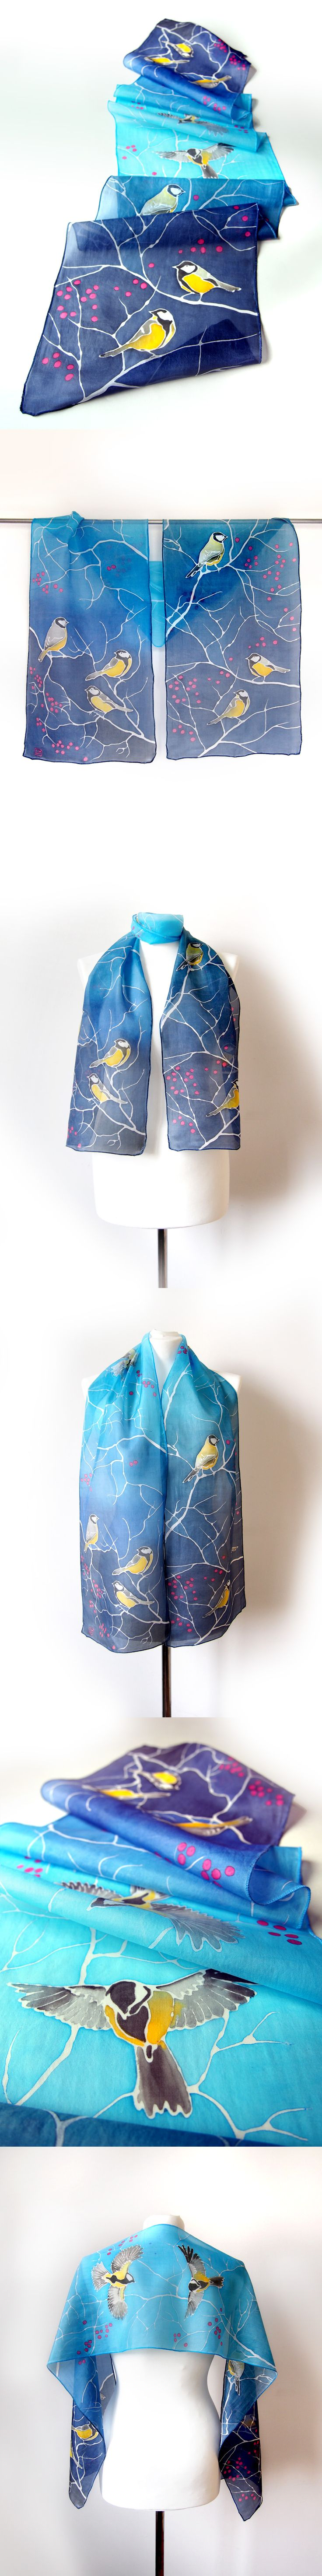 #tit #birds #hand #painted by Luiza #malinowska #minkulul on #silk #scarf